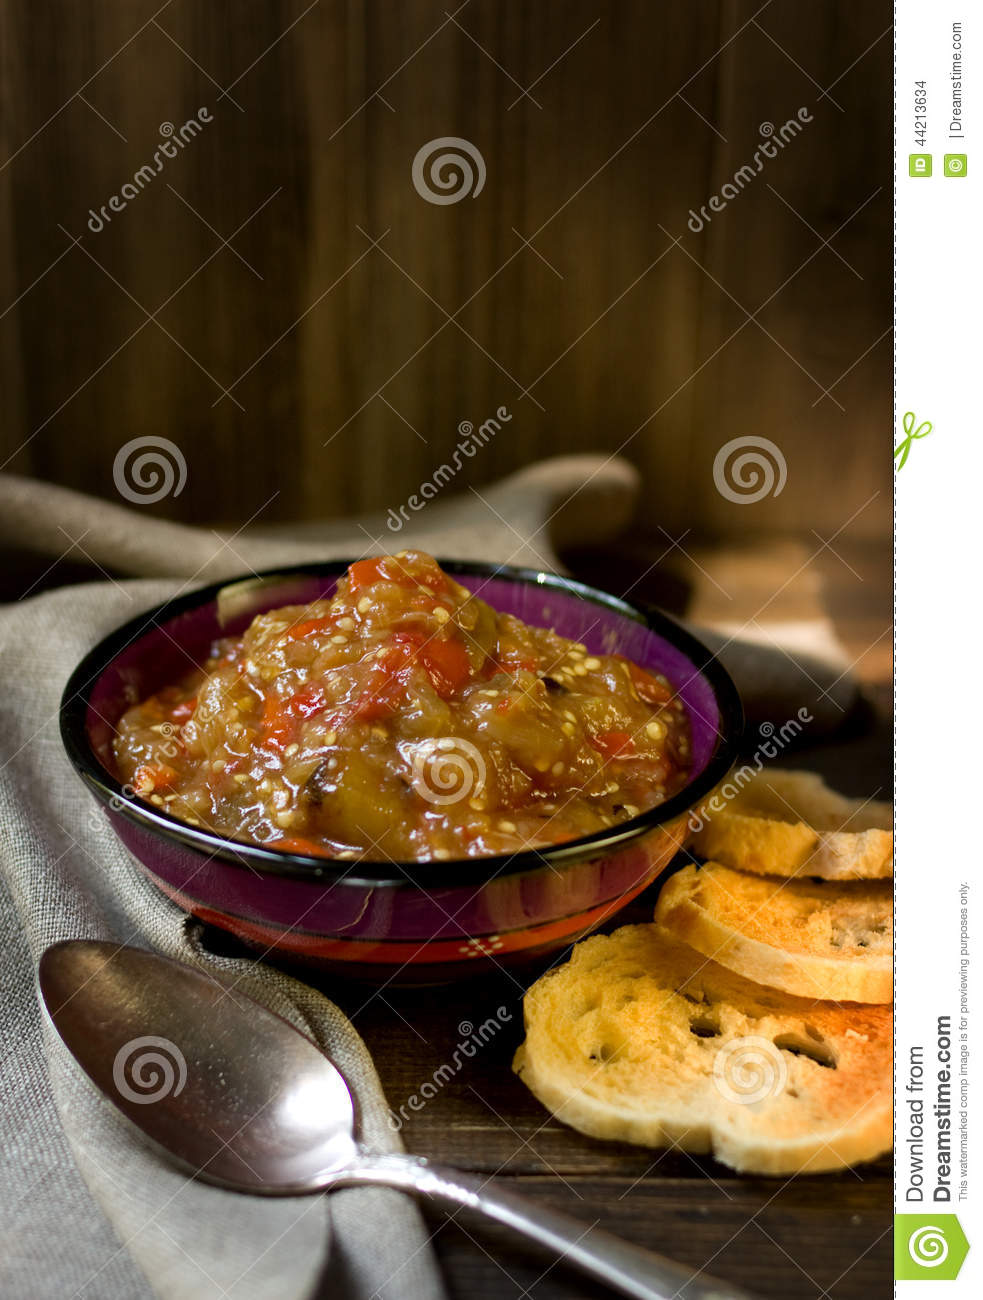 Bake eggplant salad with toasted white bread.